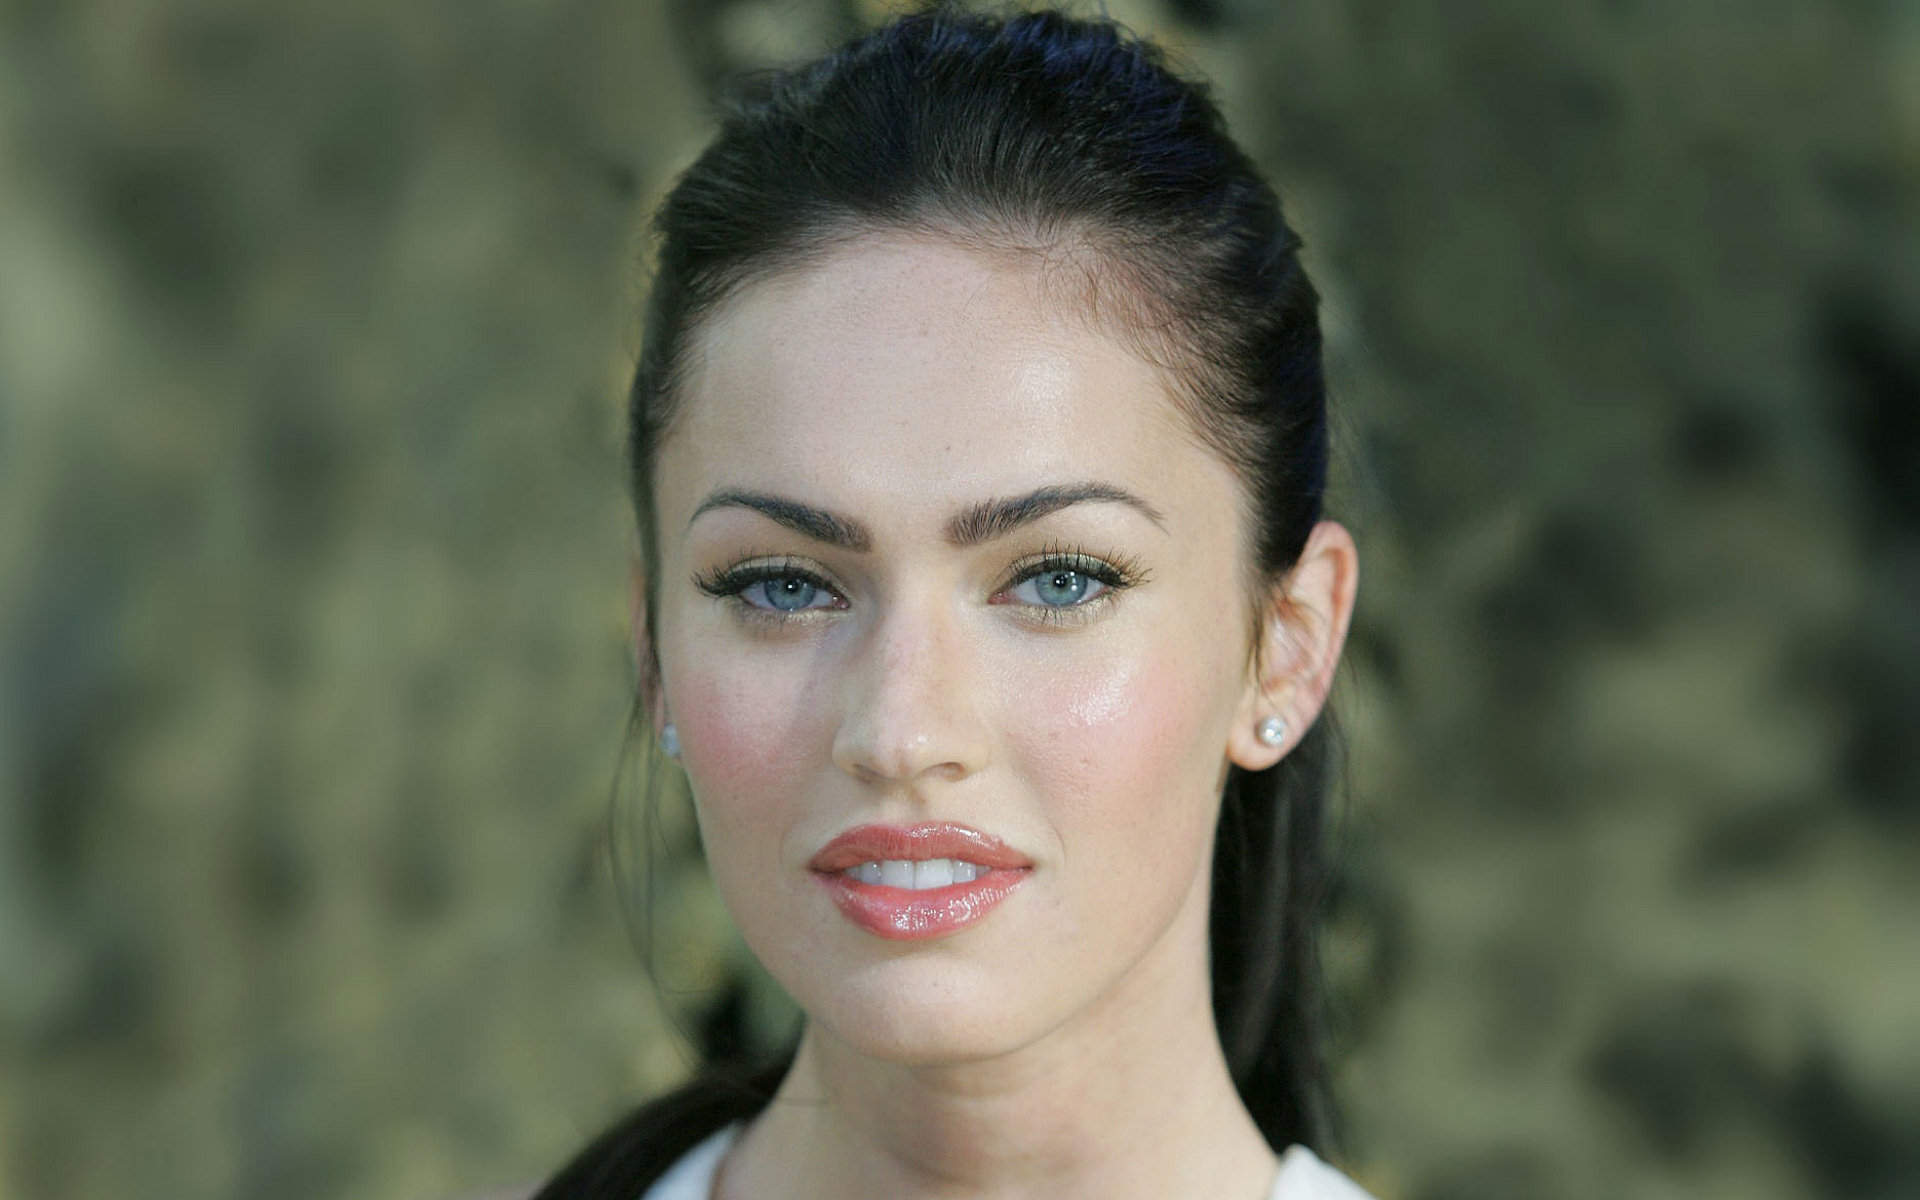 megan fox hd wallpaper | background image | 1920x1200 | id:203358